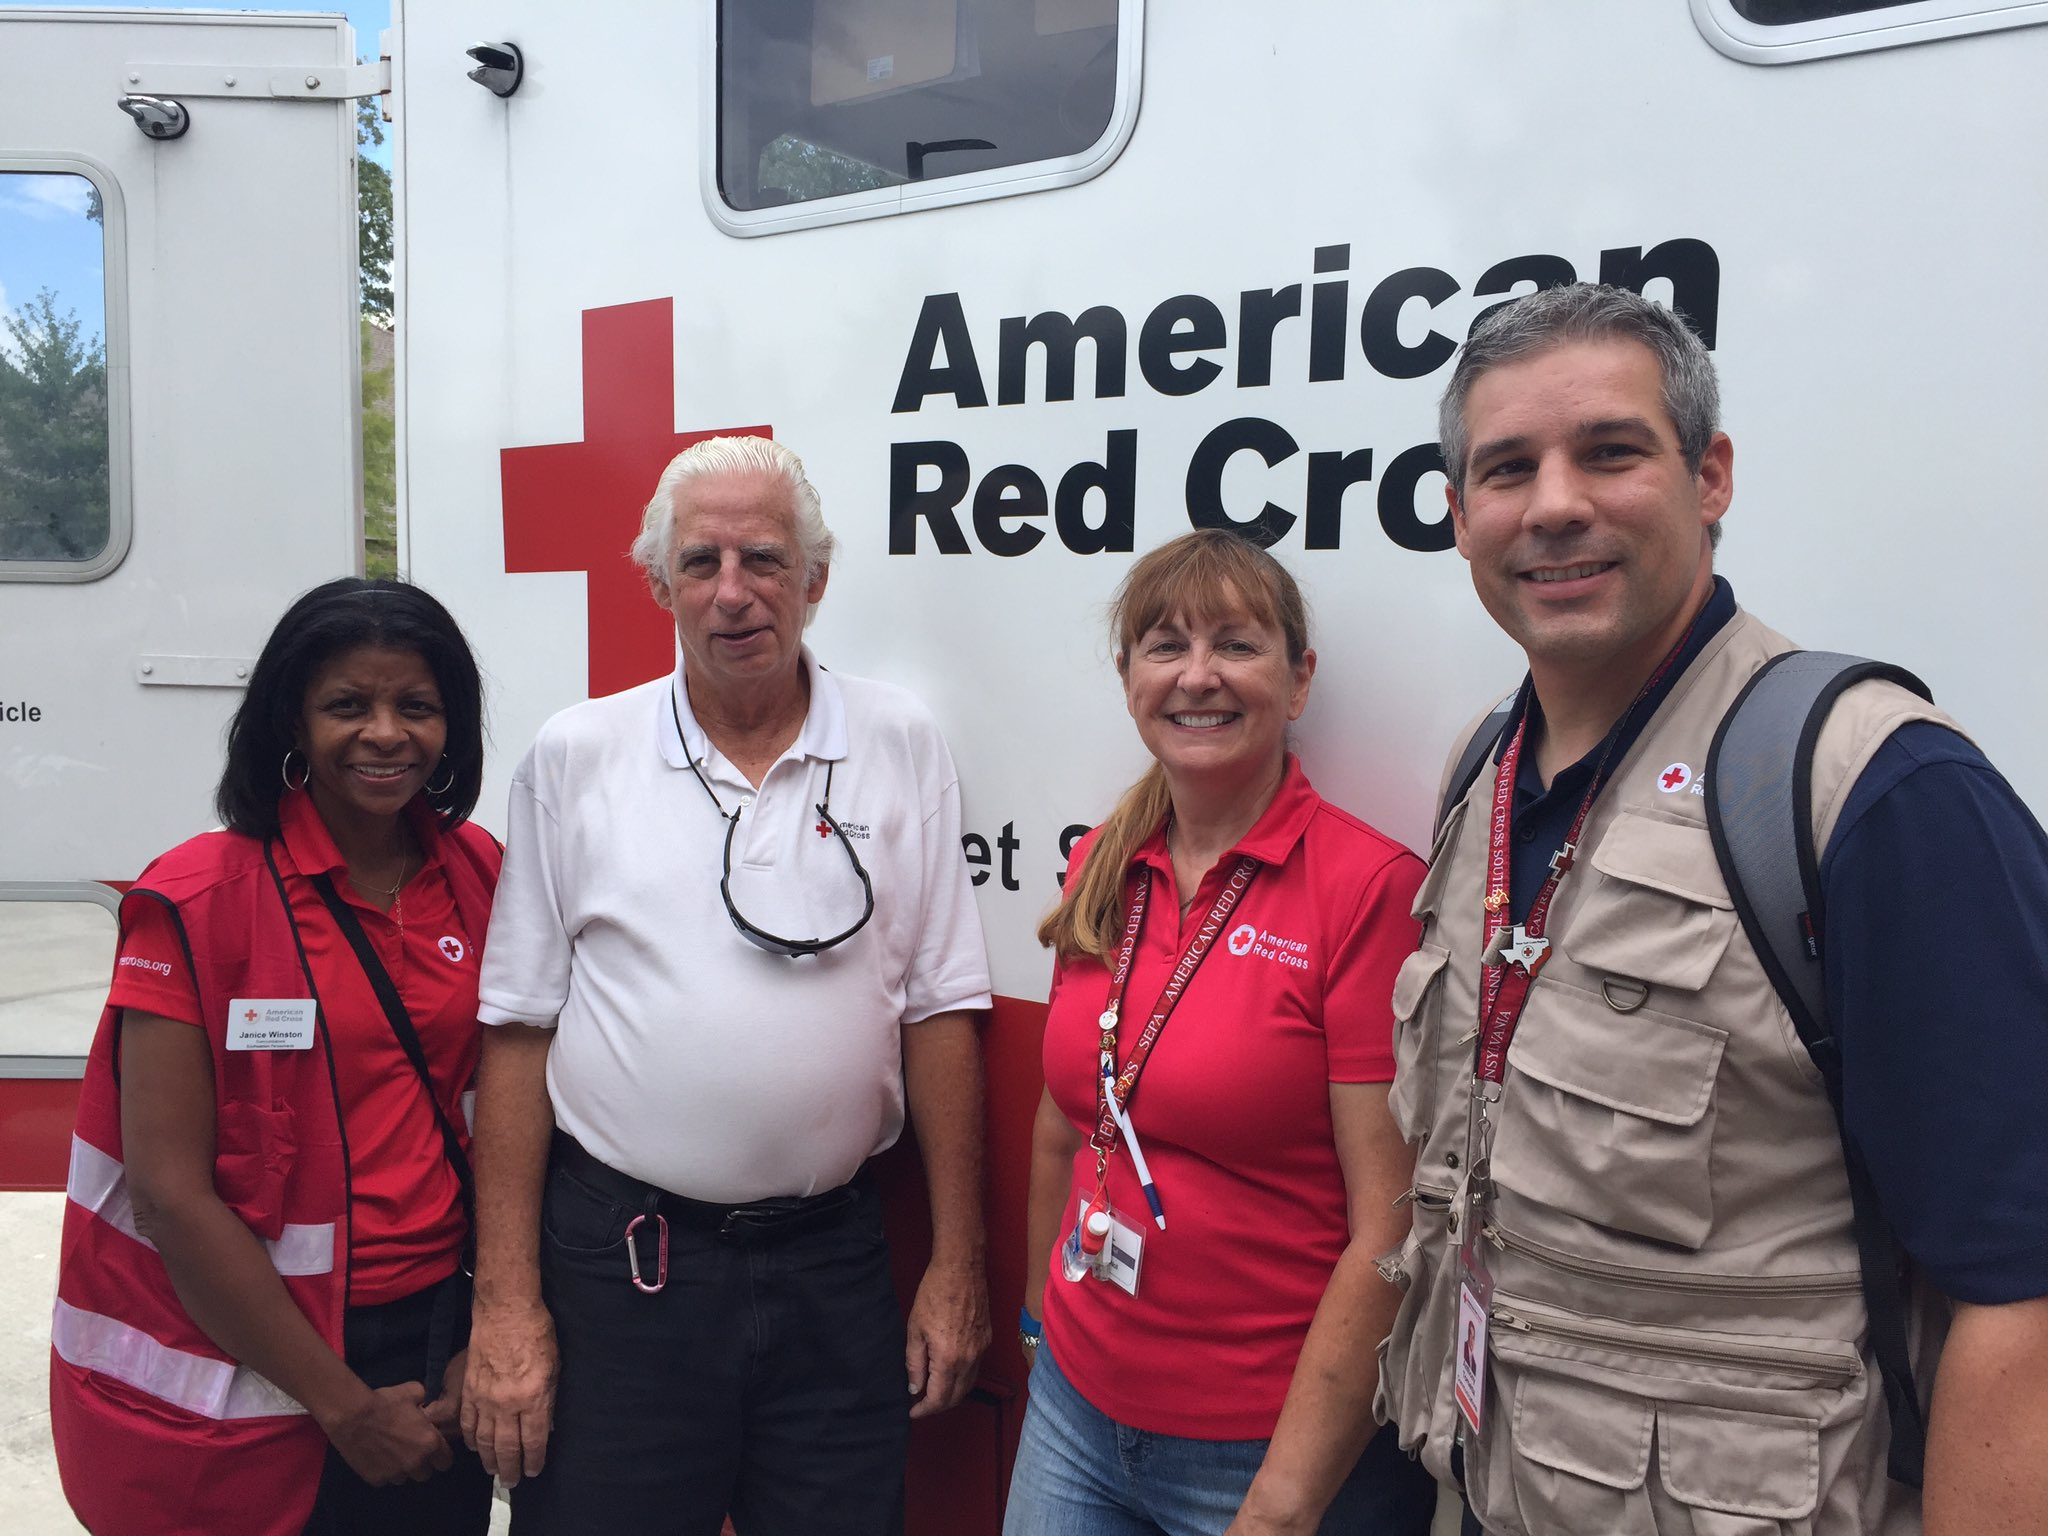 Volunteers from Buxco, Montco and Philly in Baton Rouge for @redcross response to #laflood https://t.co/WhIYGucB1m